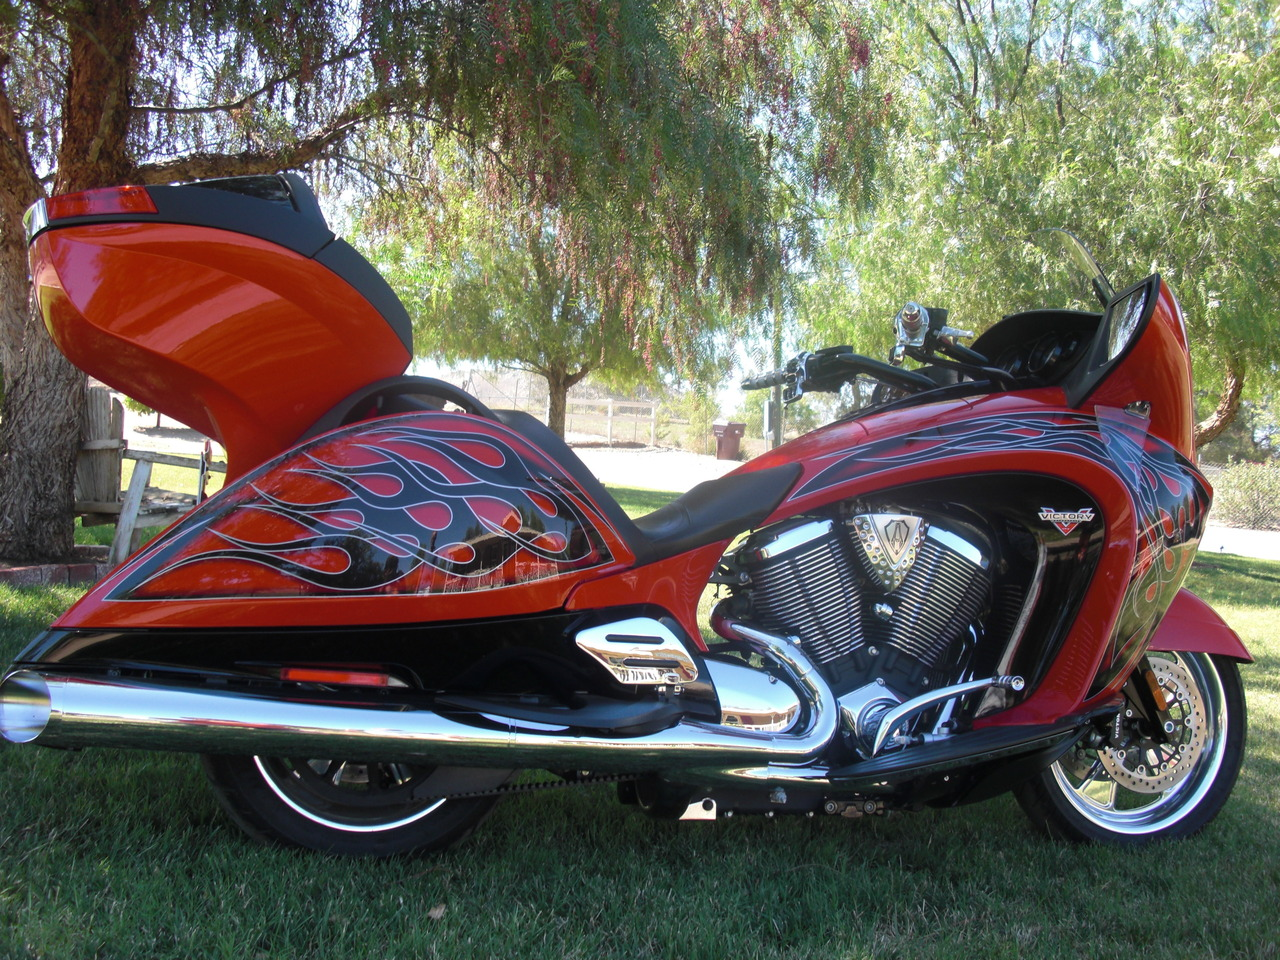 2013 Victory Vision ARLEN NESS, motorcycle listing